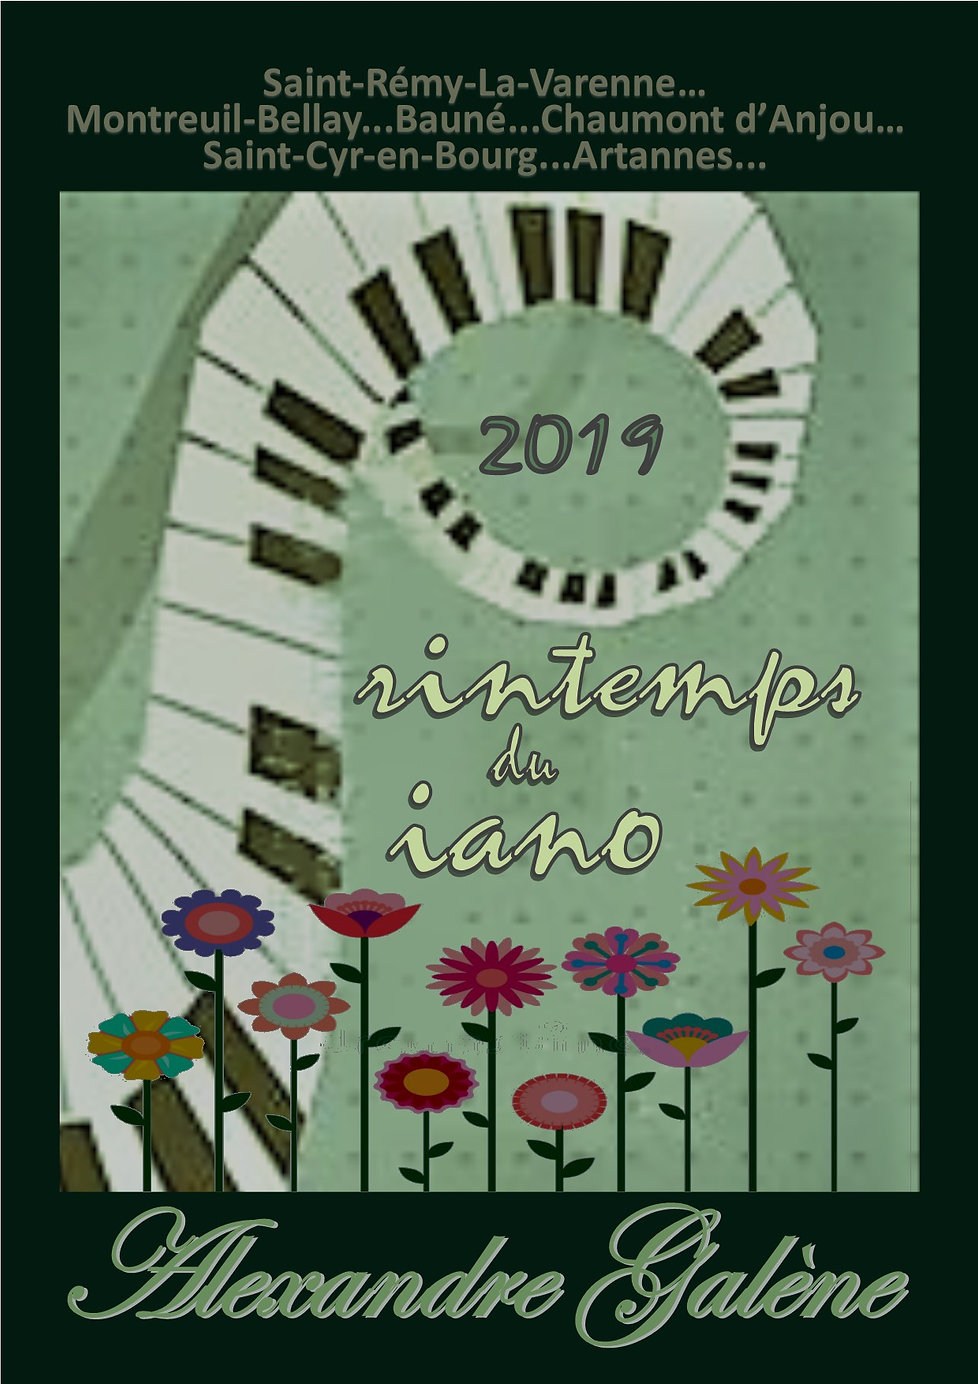 printemps du piano 2019 pub communes.jpg